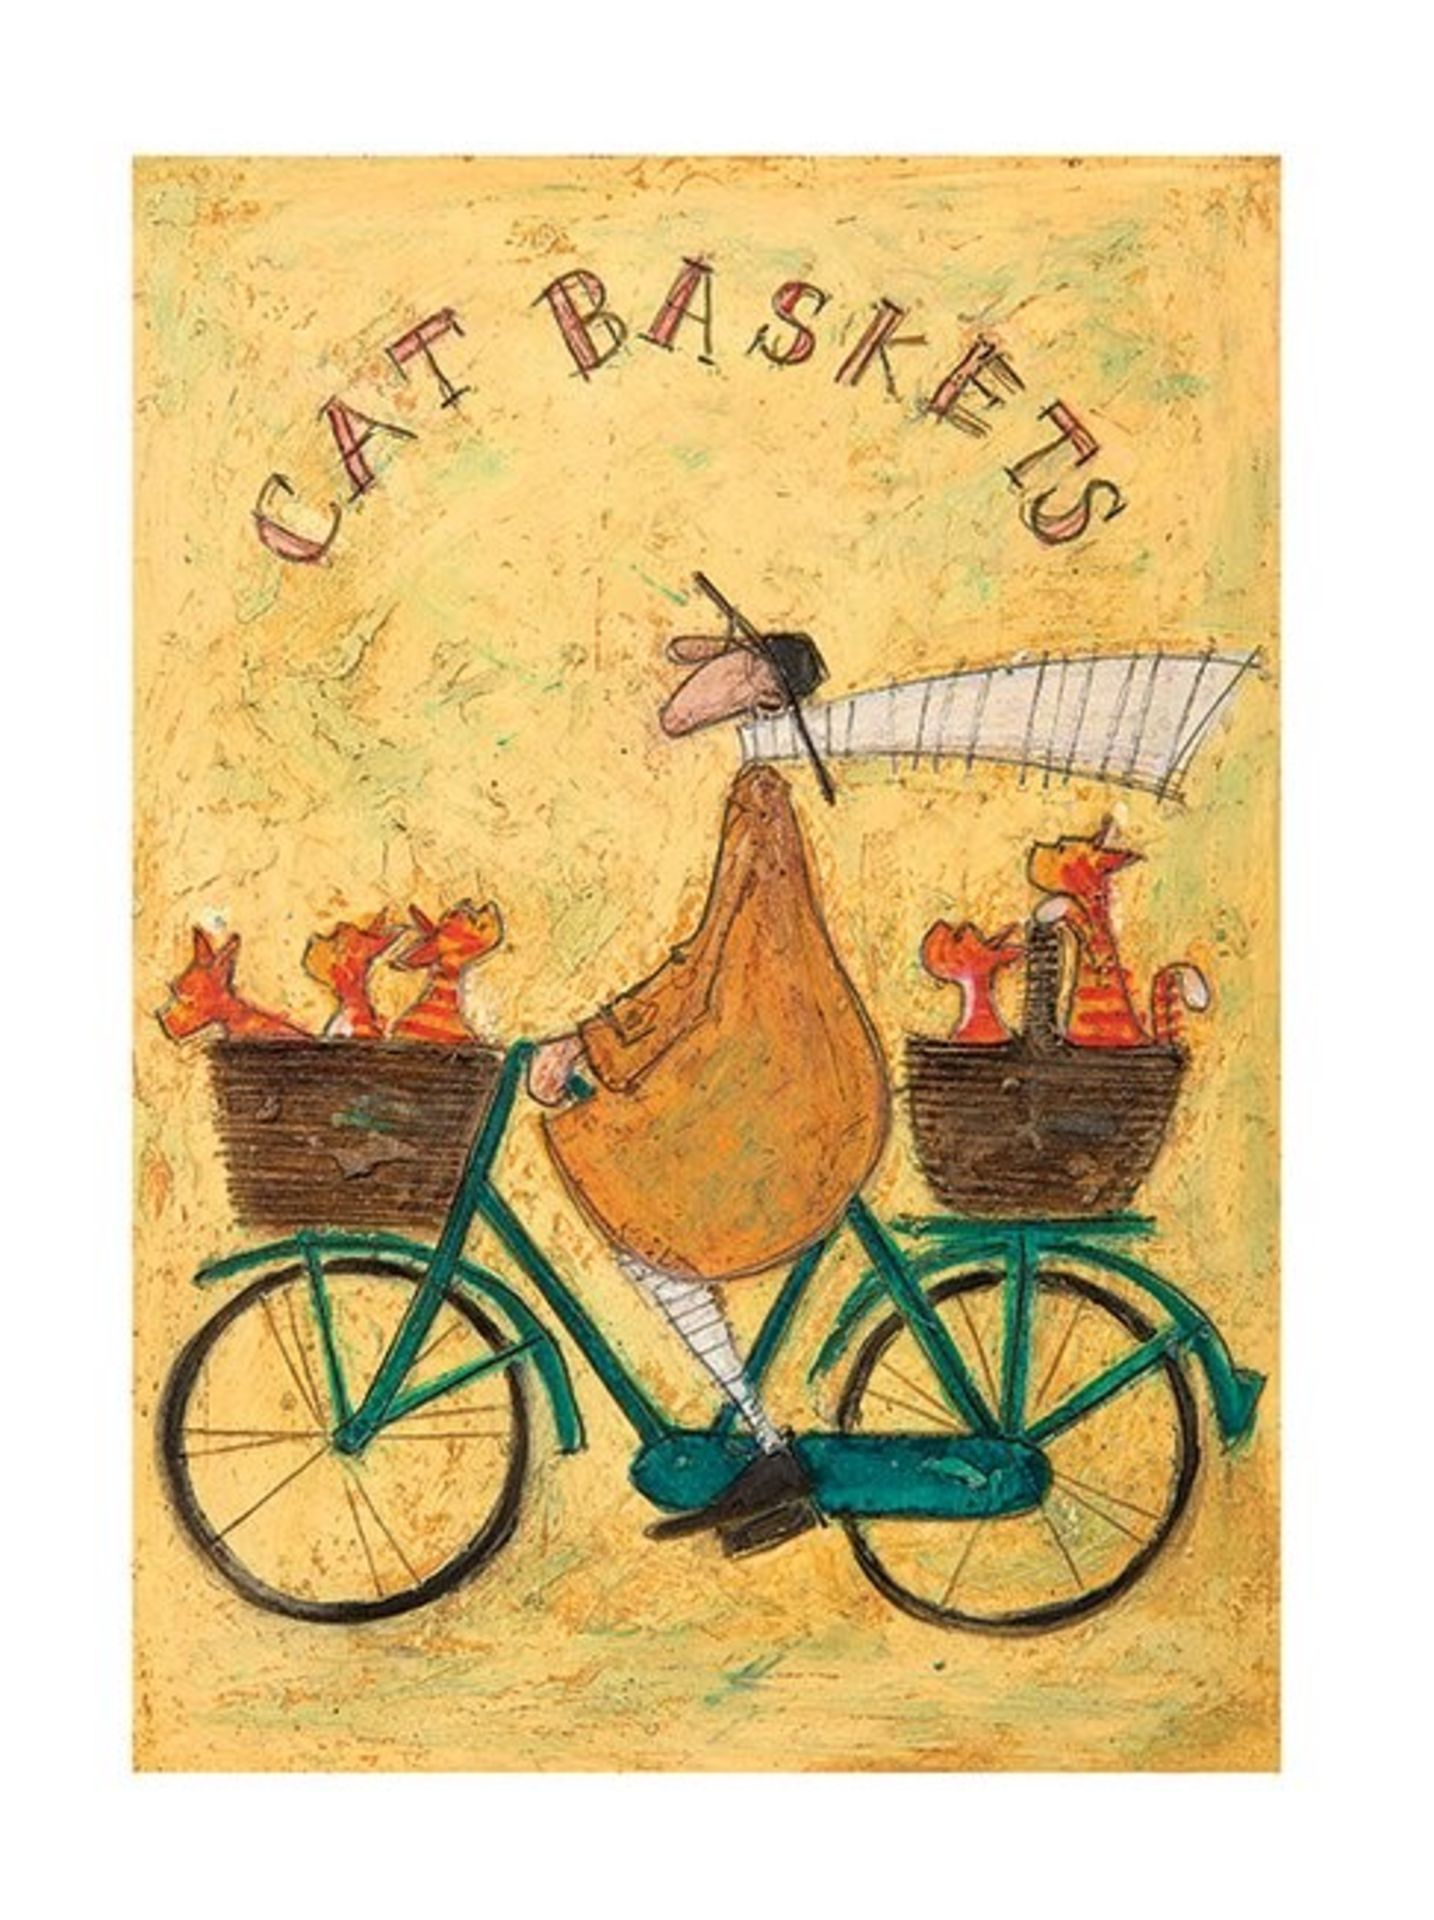 East Urban Home, Cat Baskets' by Sam Toft Painting Print (ROLLED UP) - RRP£13.99 (CACA4018 - 21458/